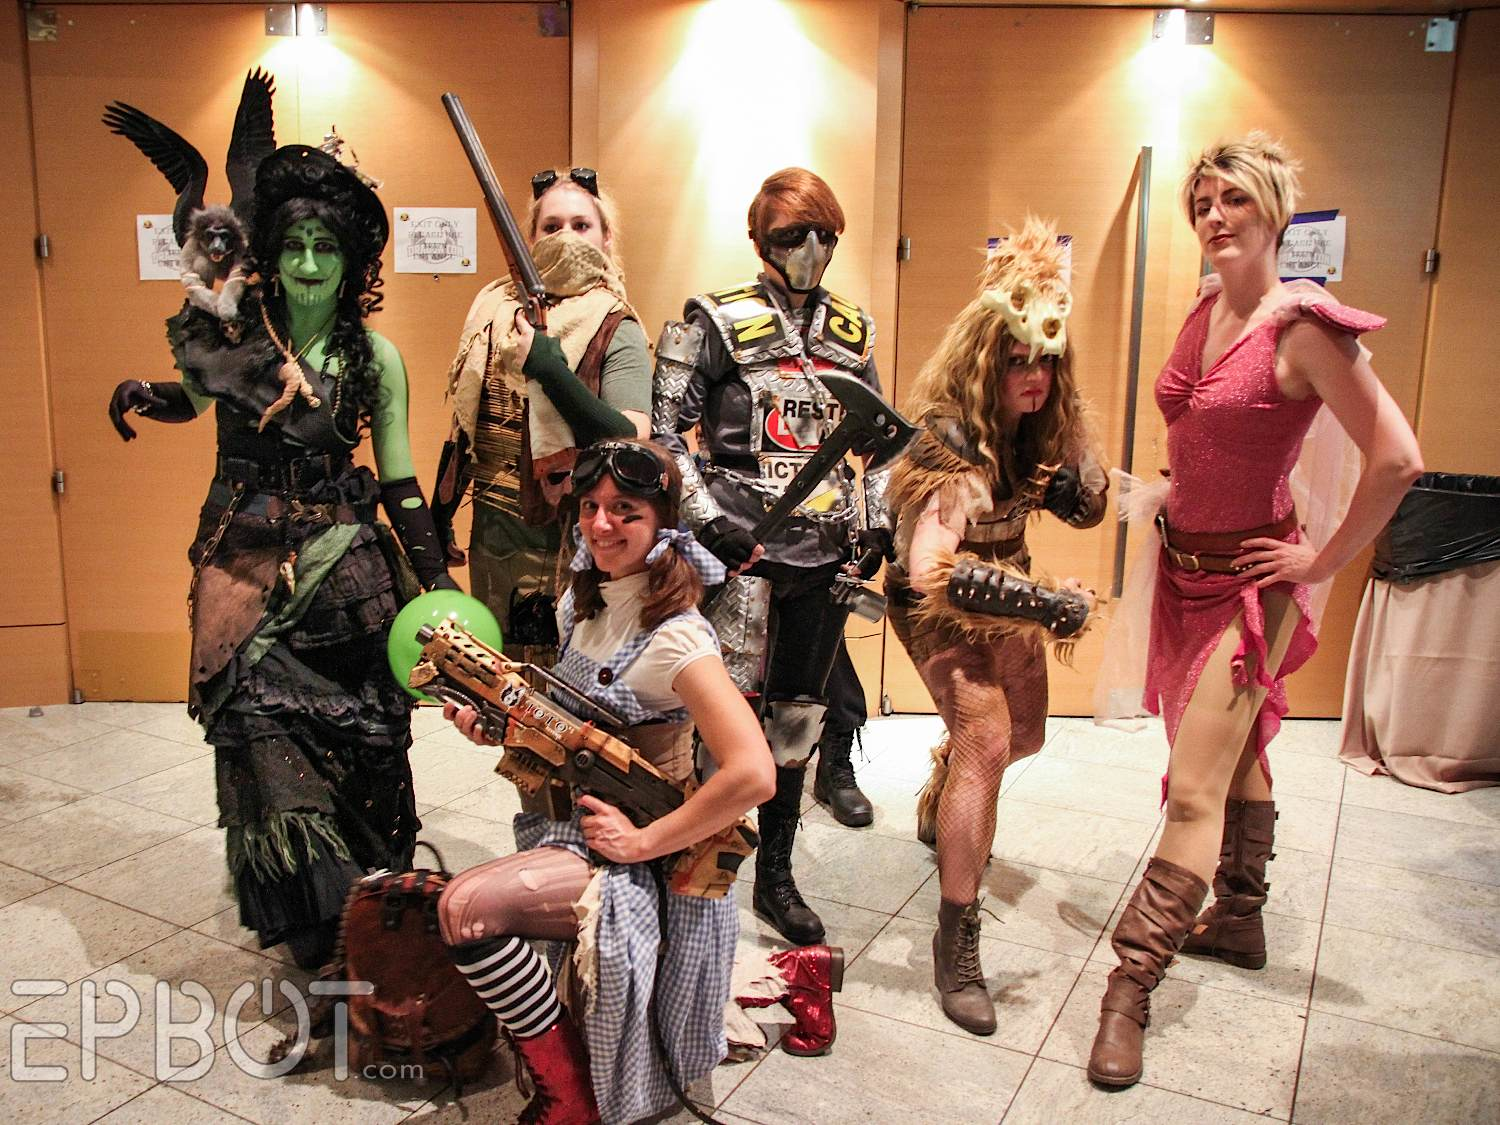 First I went nuts for this post-apocalyptic Wizard of Oz group  sc 1 st  Epbot & EPBOT: Dragon Con 2015 The Best Cosplay Pt 4